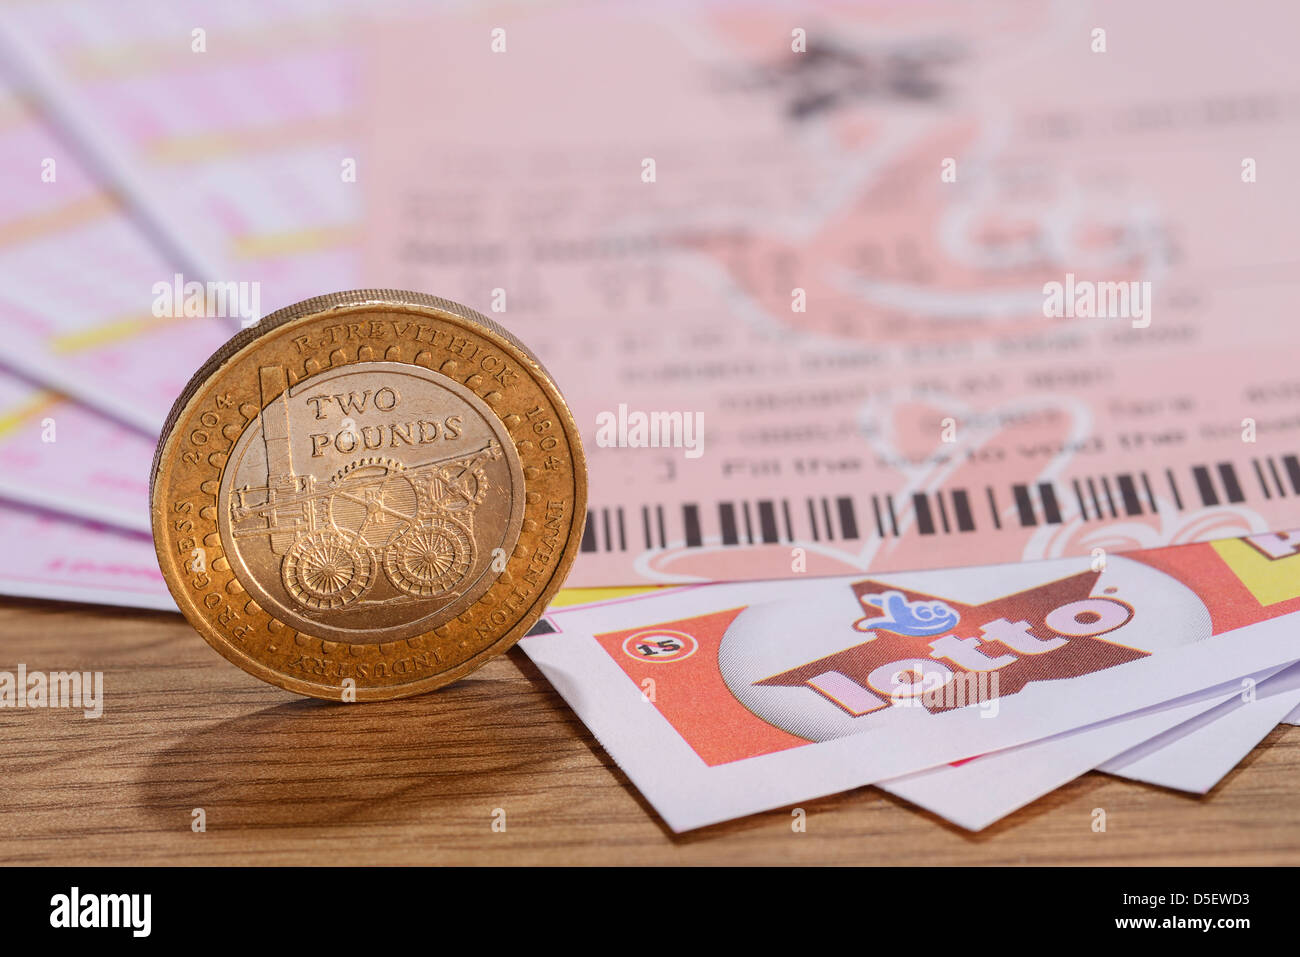 UK Lotto tickets with a two pound coin - Stock Image